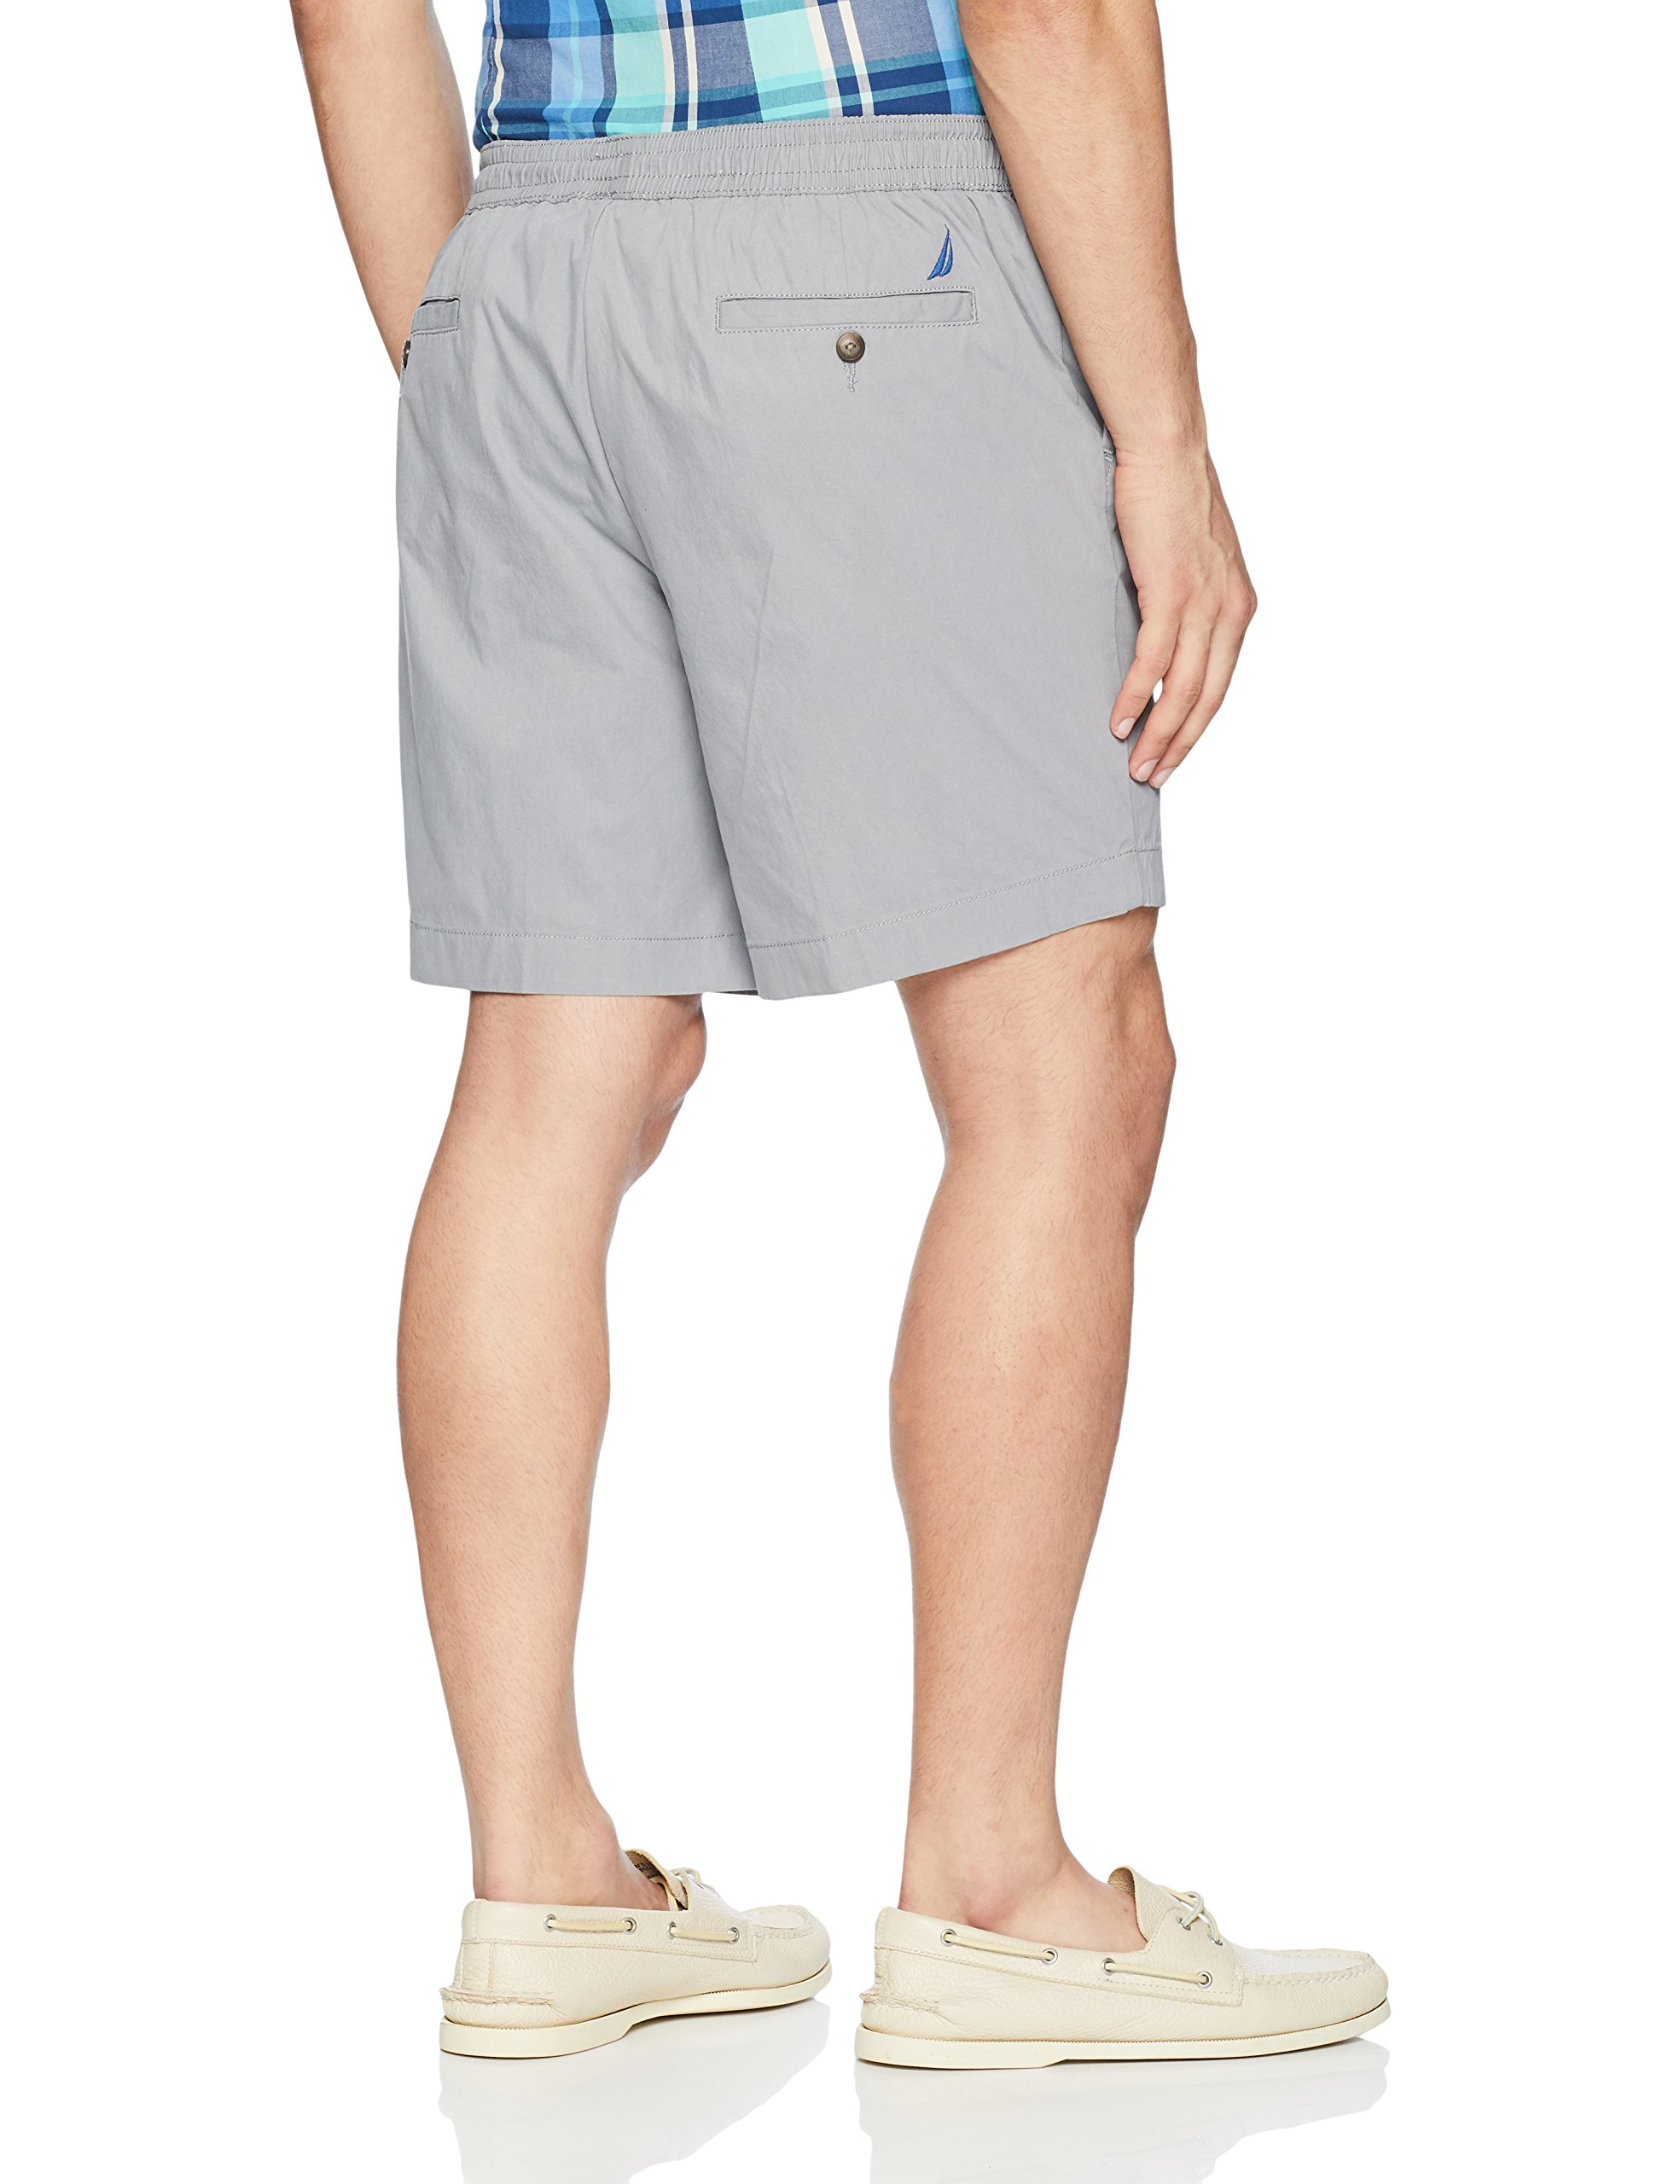 New-Nautica-Mens-Shorts-Gray-Size-Large-L-Casual-Boardwalk-Drawstring-55-266 thumbnail 2